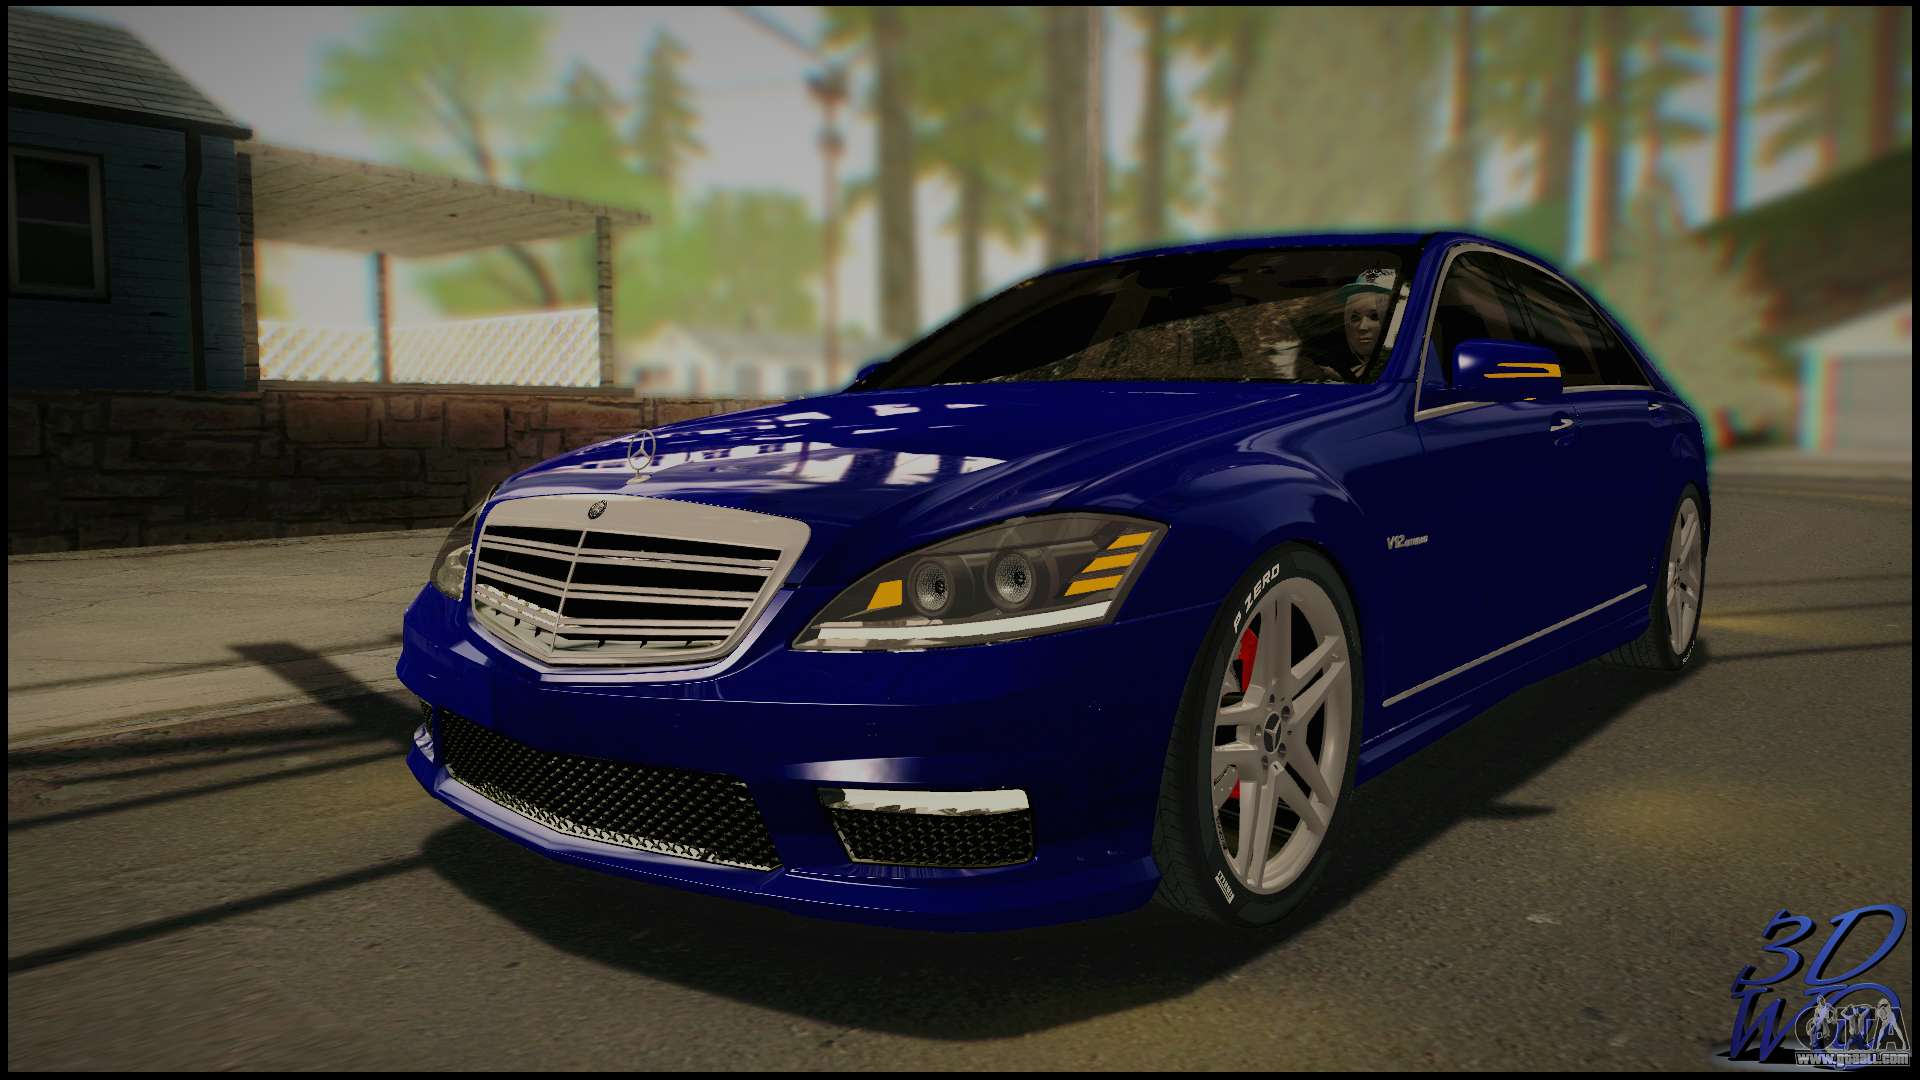 Mercedes benz s65 amg 2012 road version for gta san andreas for Mercedes benz s65 amg